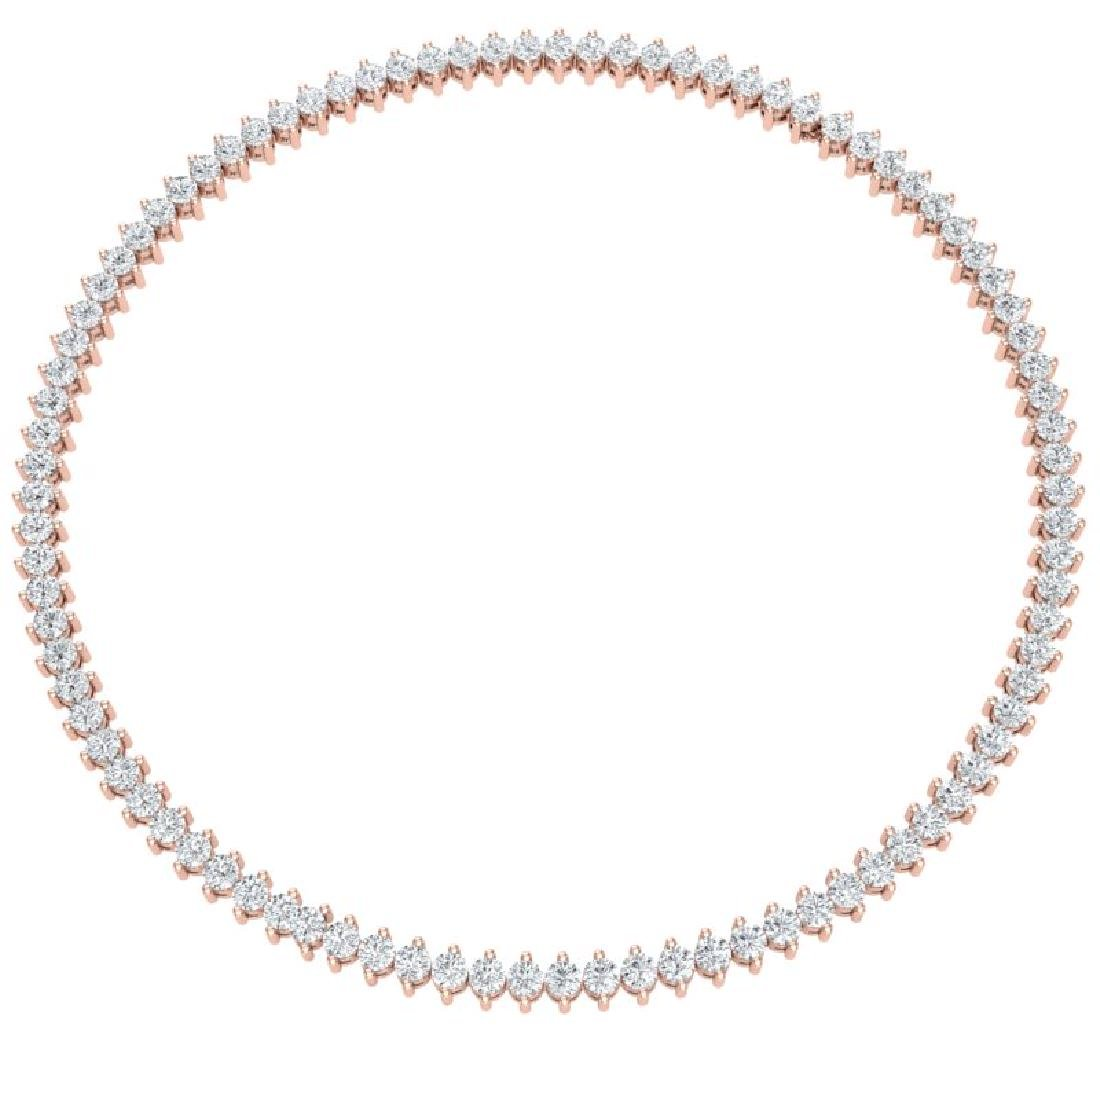 20 CTW Certified VS/SI Diamond Necklace 18K Rose Gold - 3